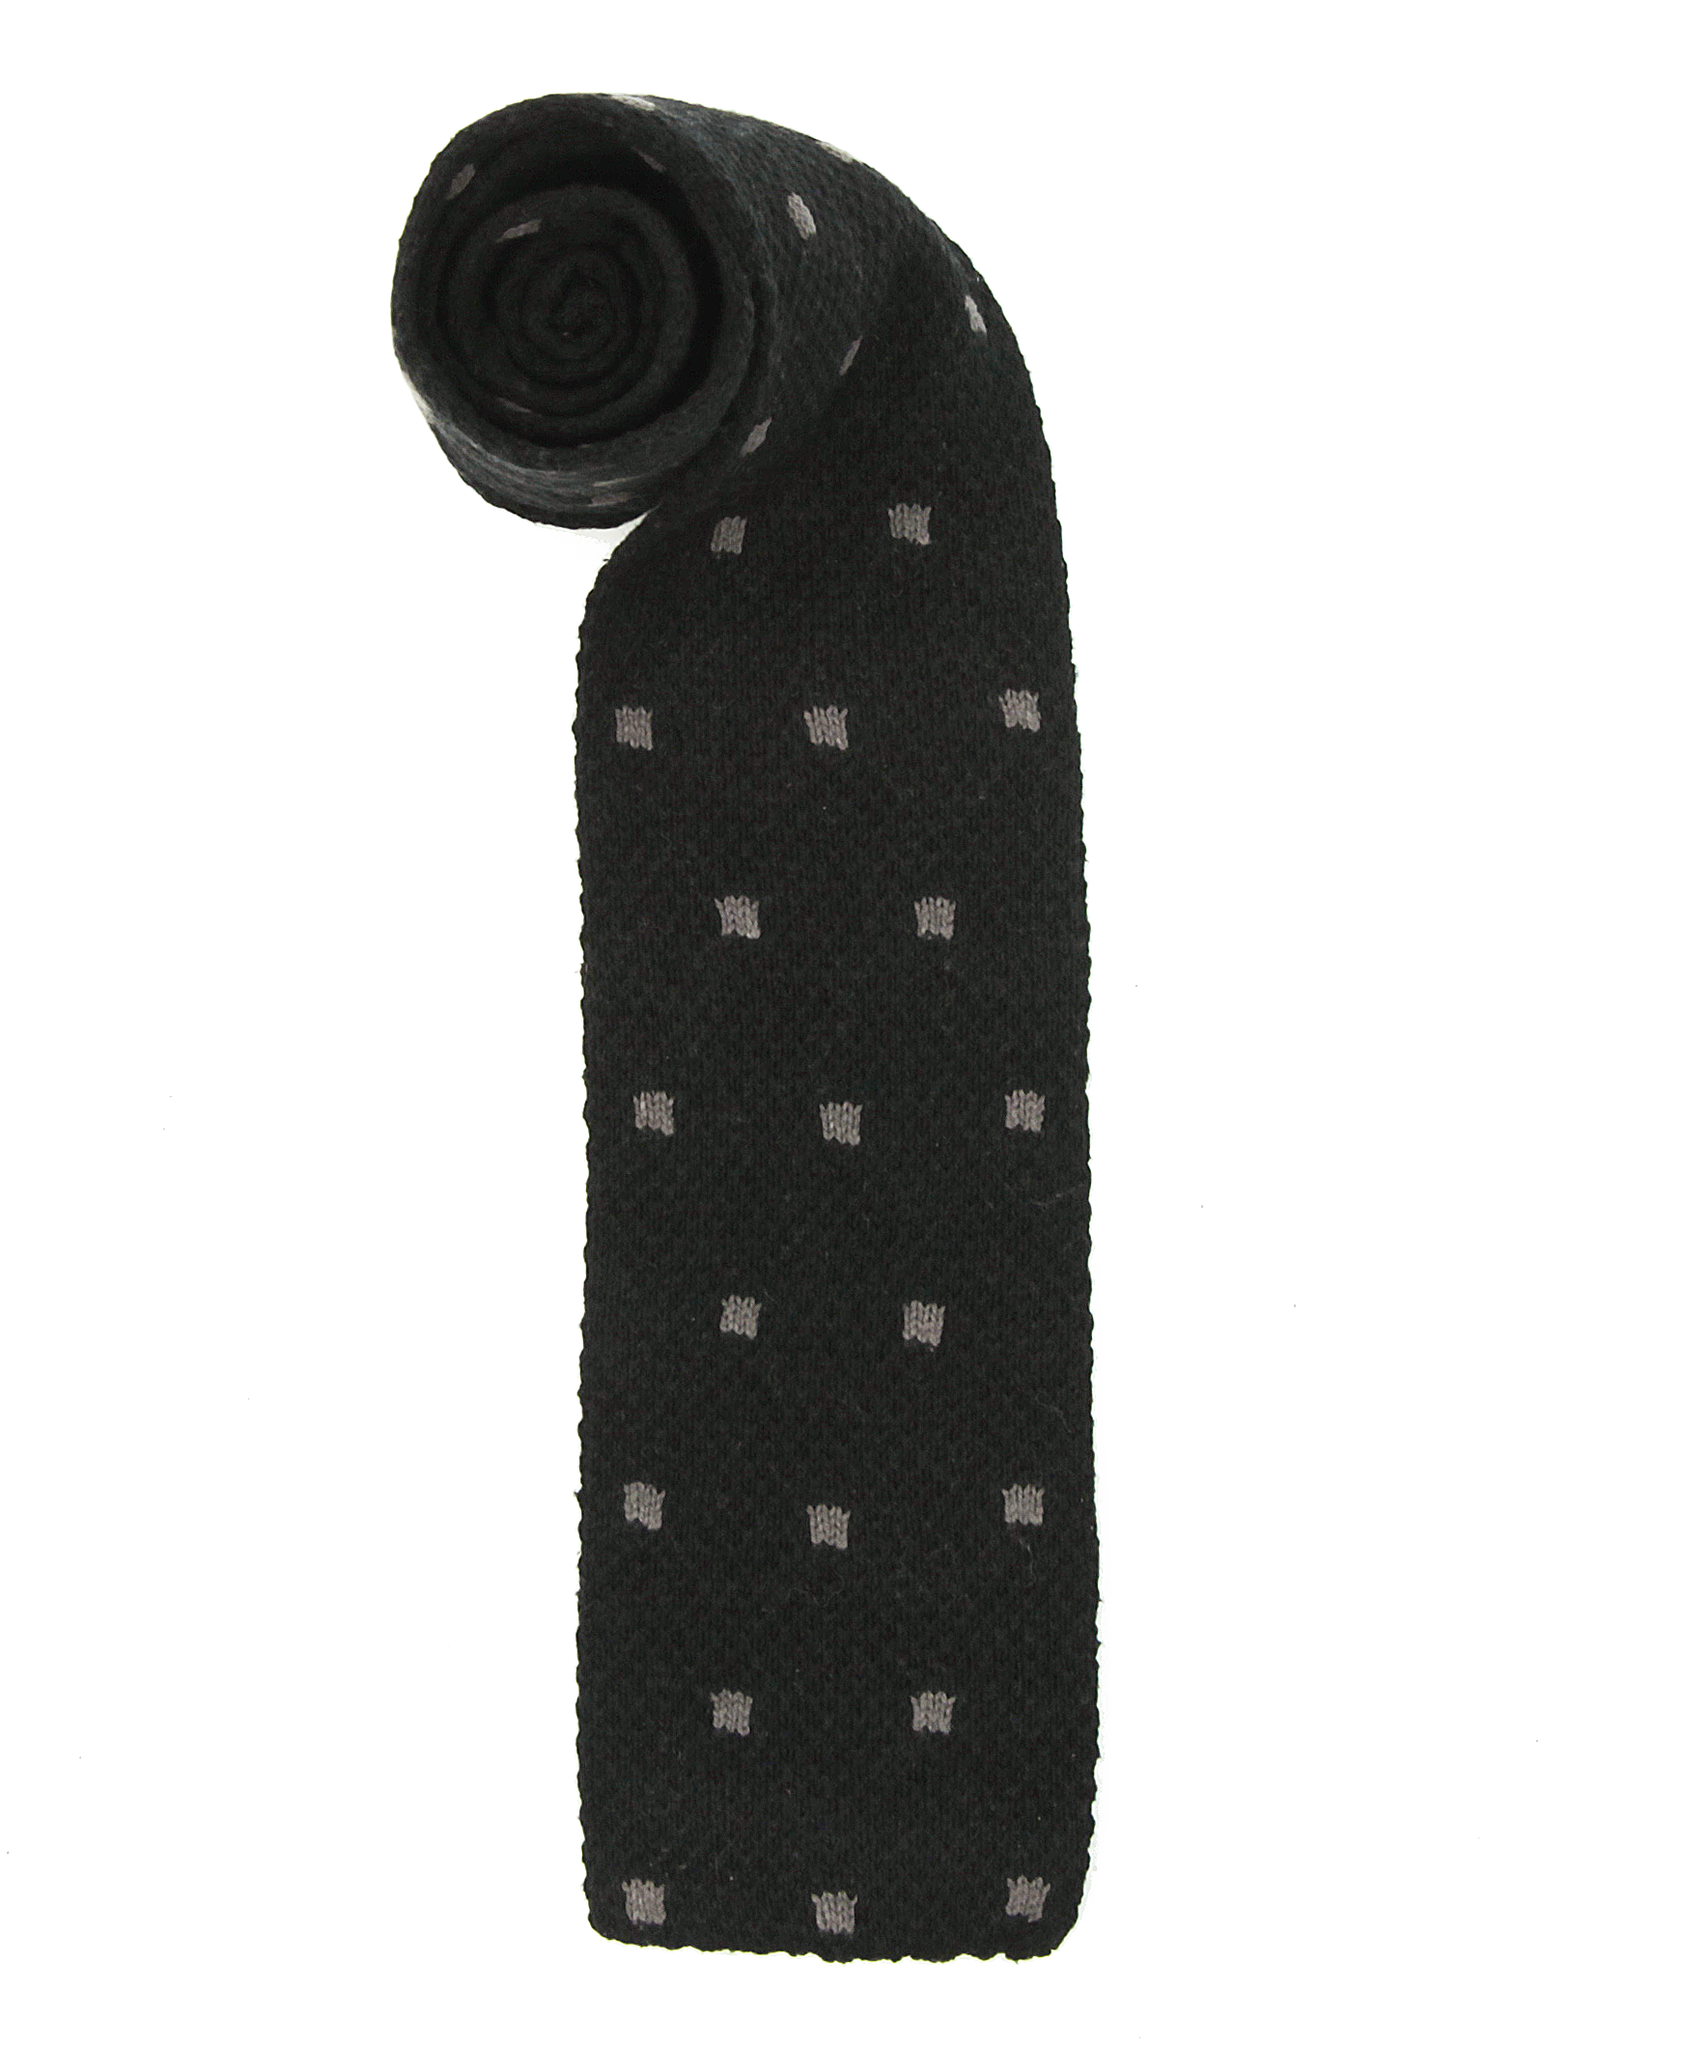 The Spot Knit Necktie